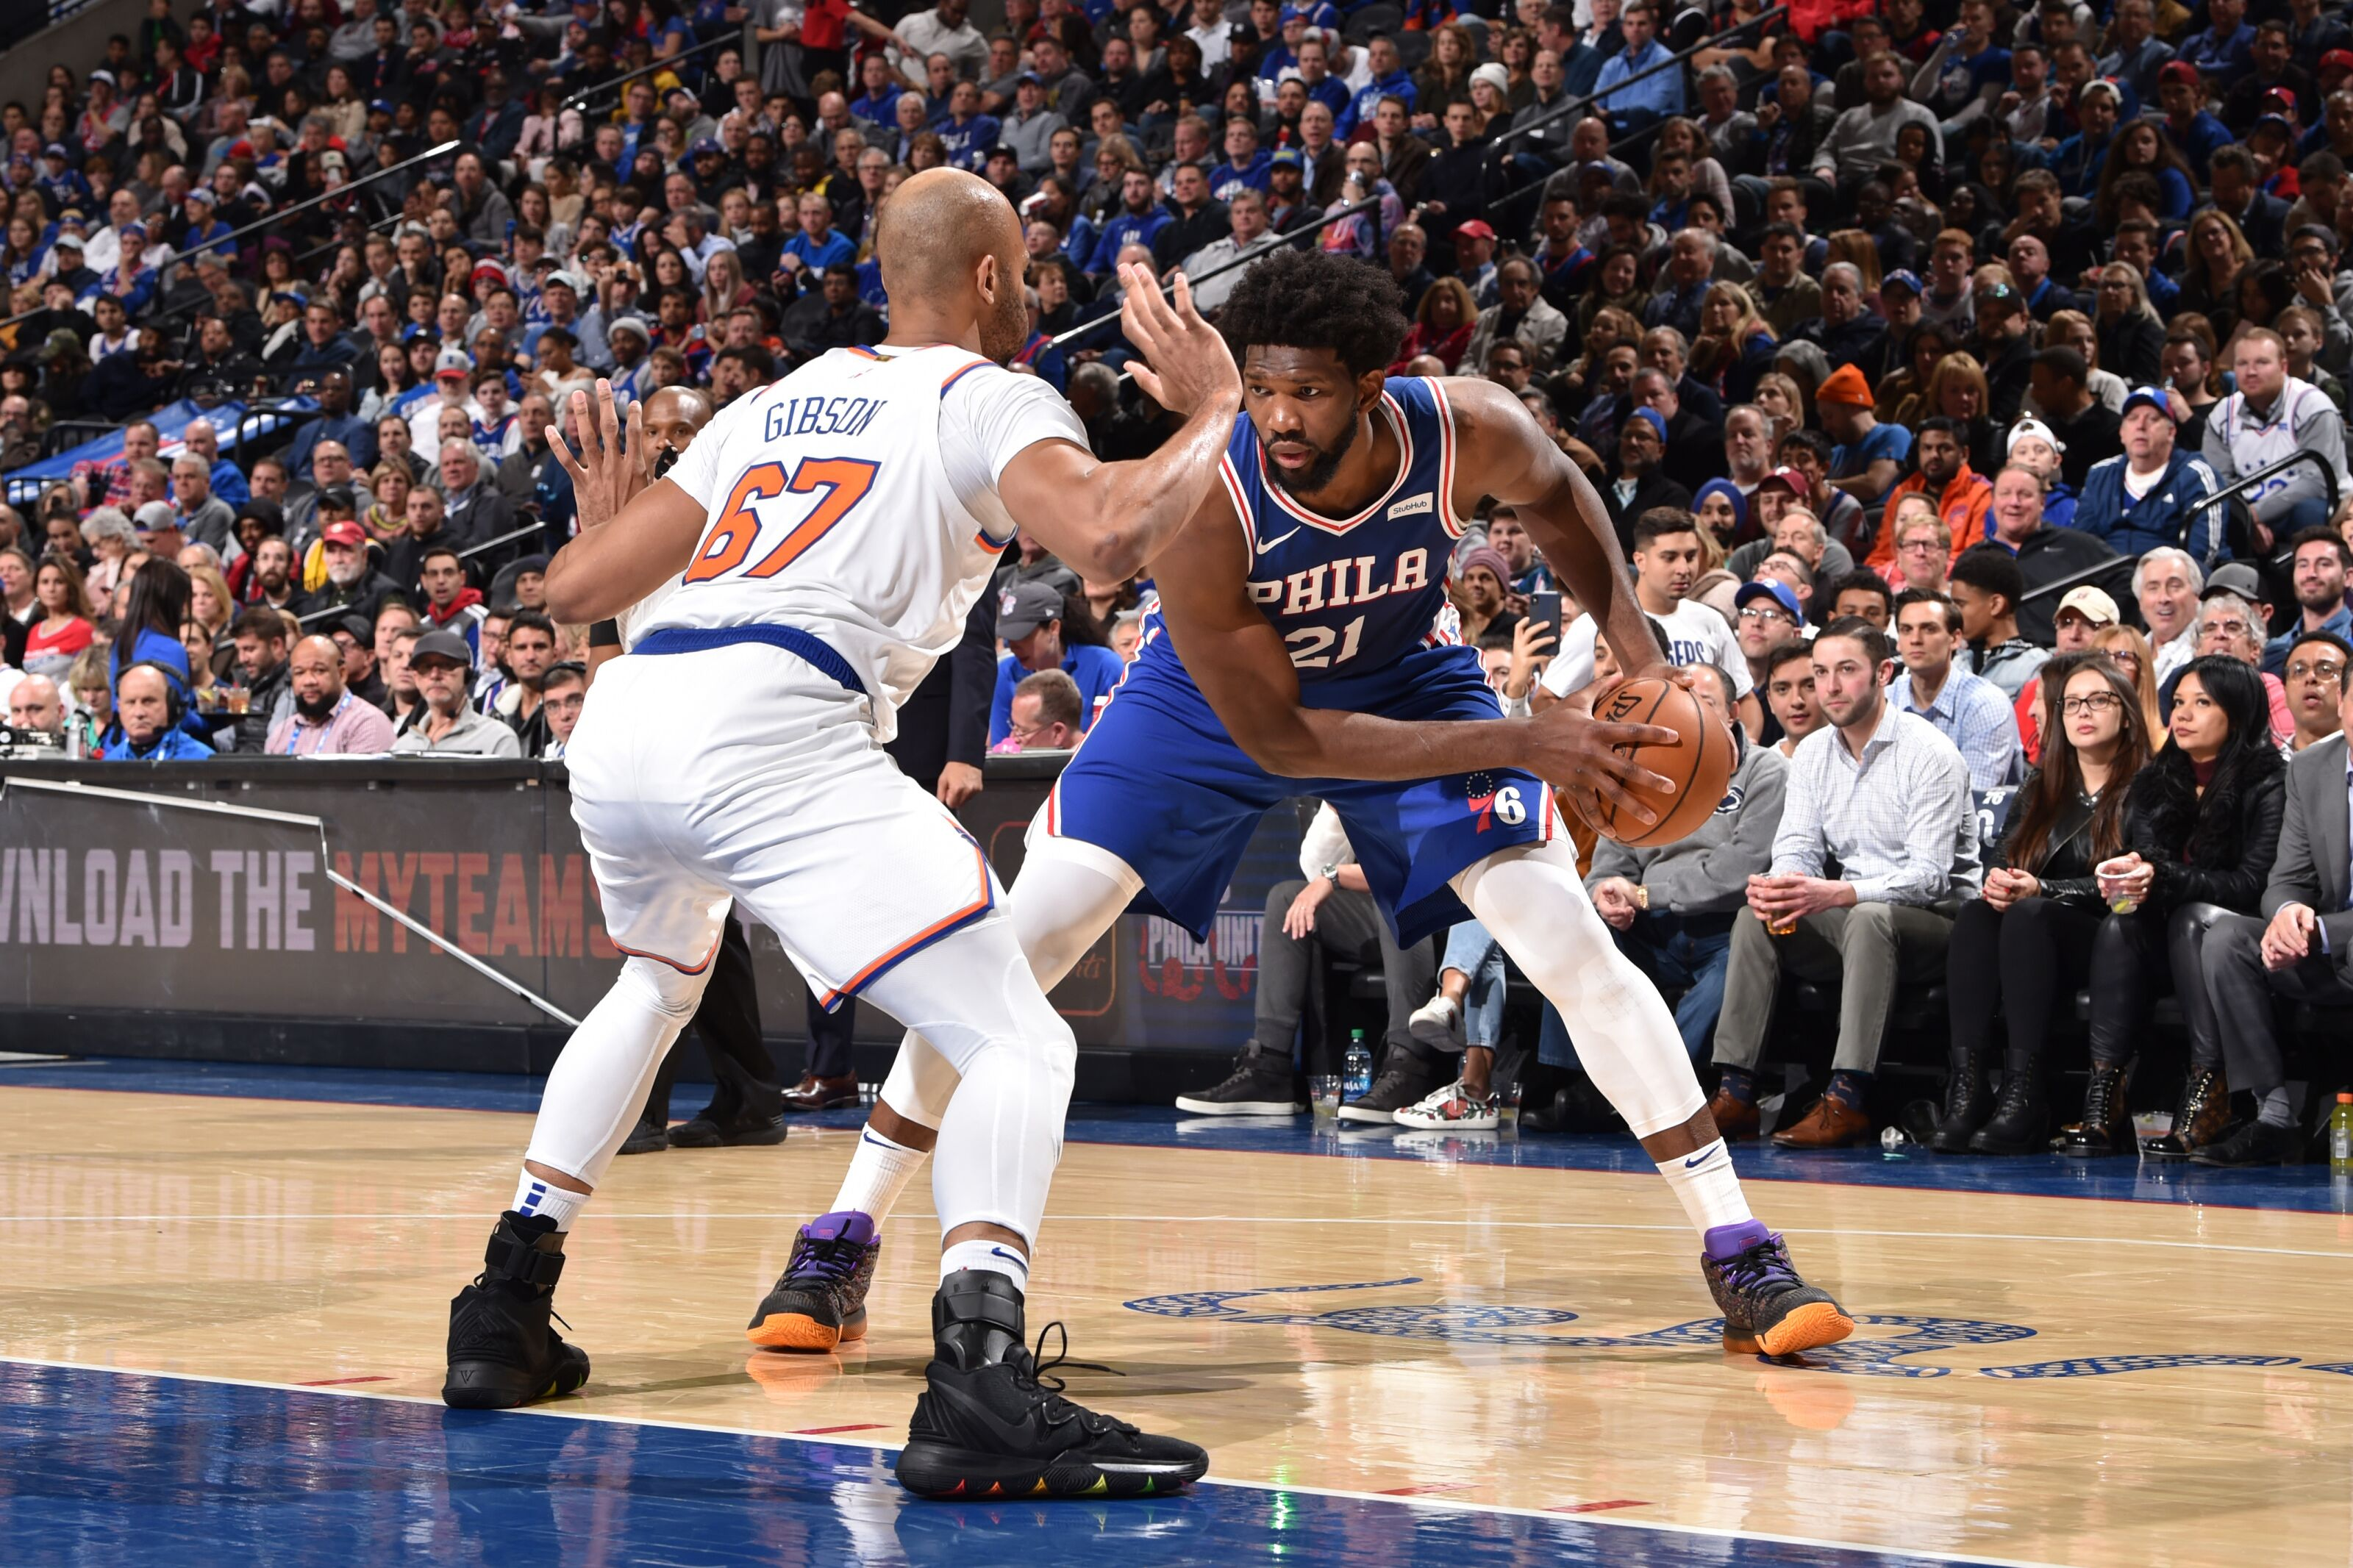 New York Knicks: Grades and reactions from tough loss to 76ers